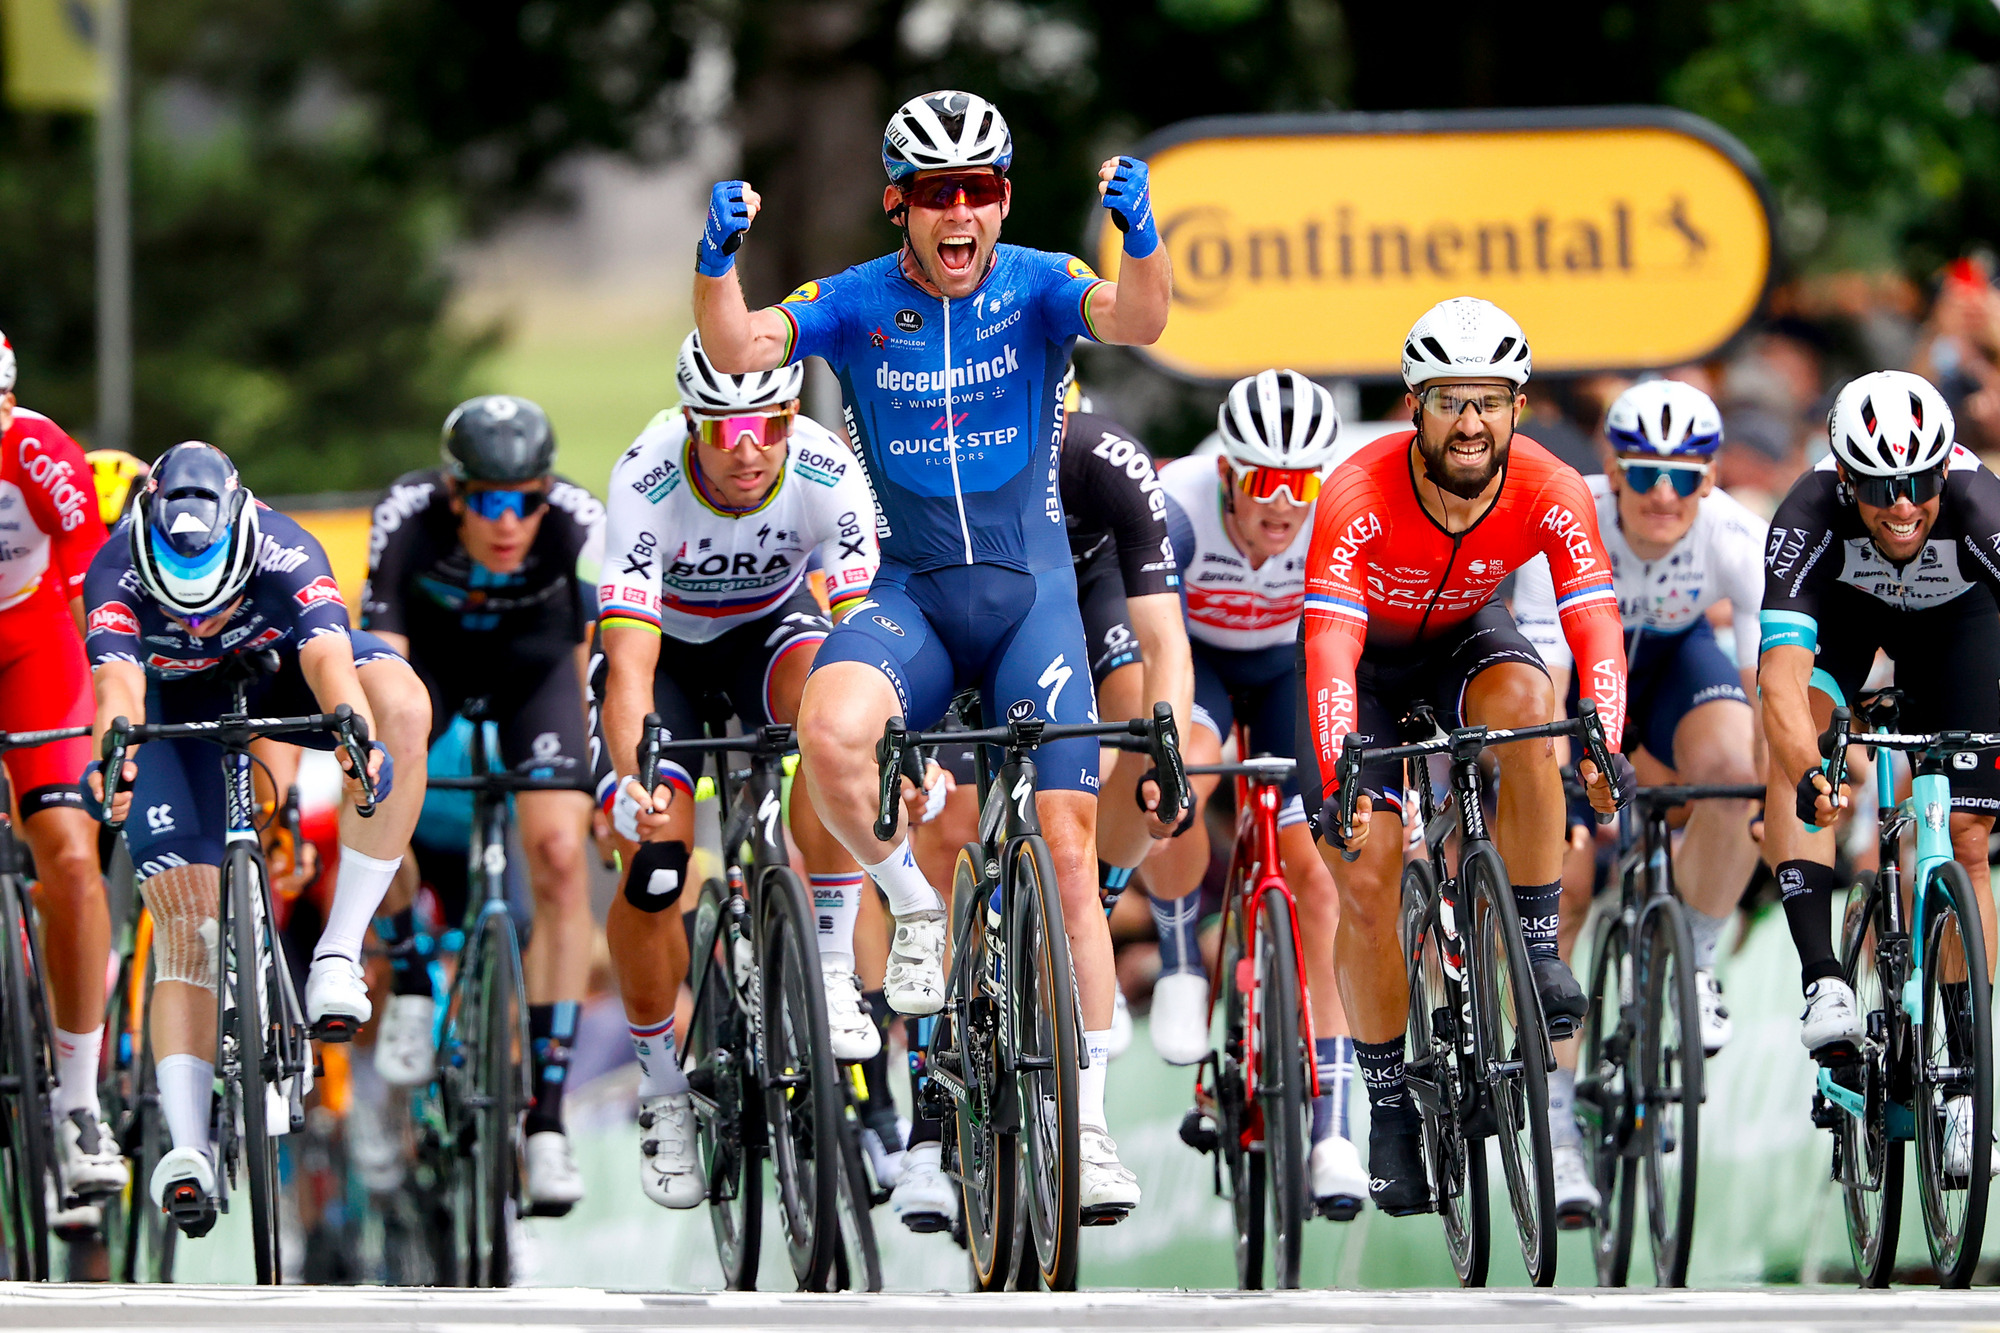 Tour de France 2021 - 108th Edition - 4th stage Redon - Fougeres 150,4 km - 29/06/2021 - Mark Cavendish (GBR - Deceuninck - Quick-Step) - photo Luca Bettini/BettiniPhoto©2021